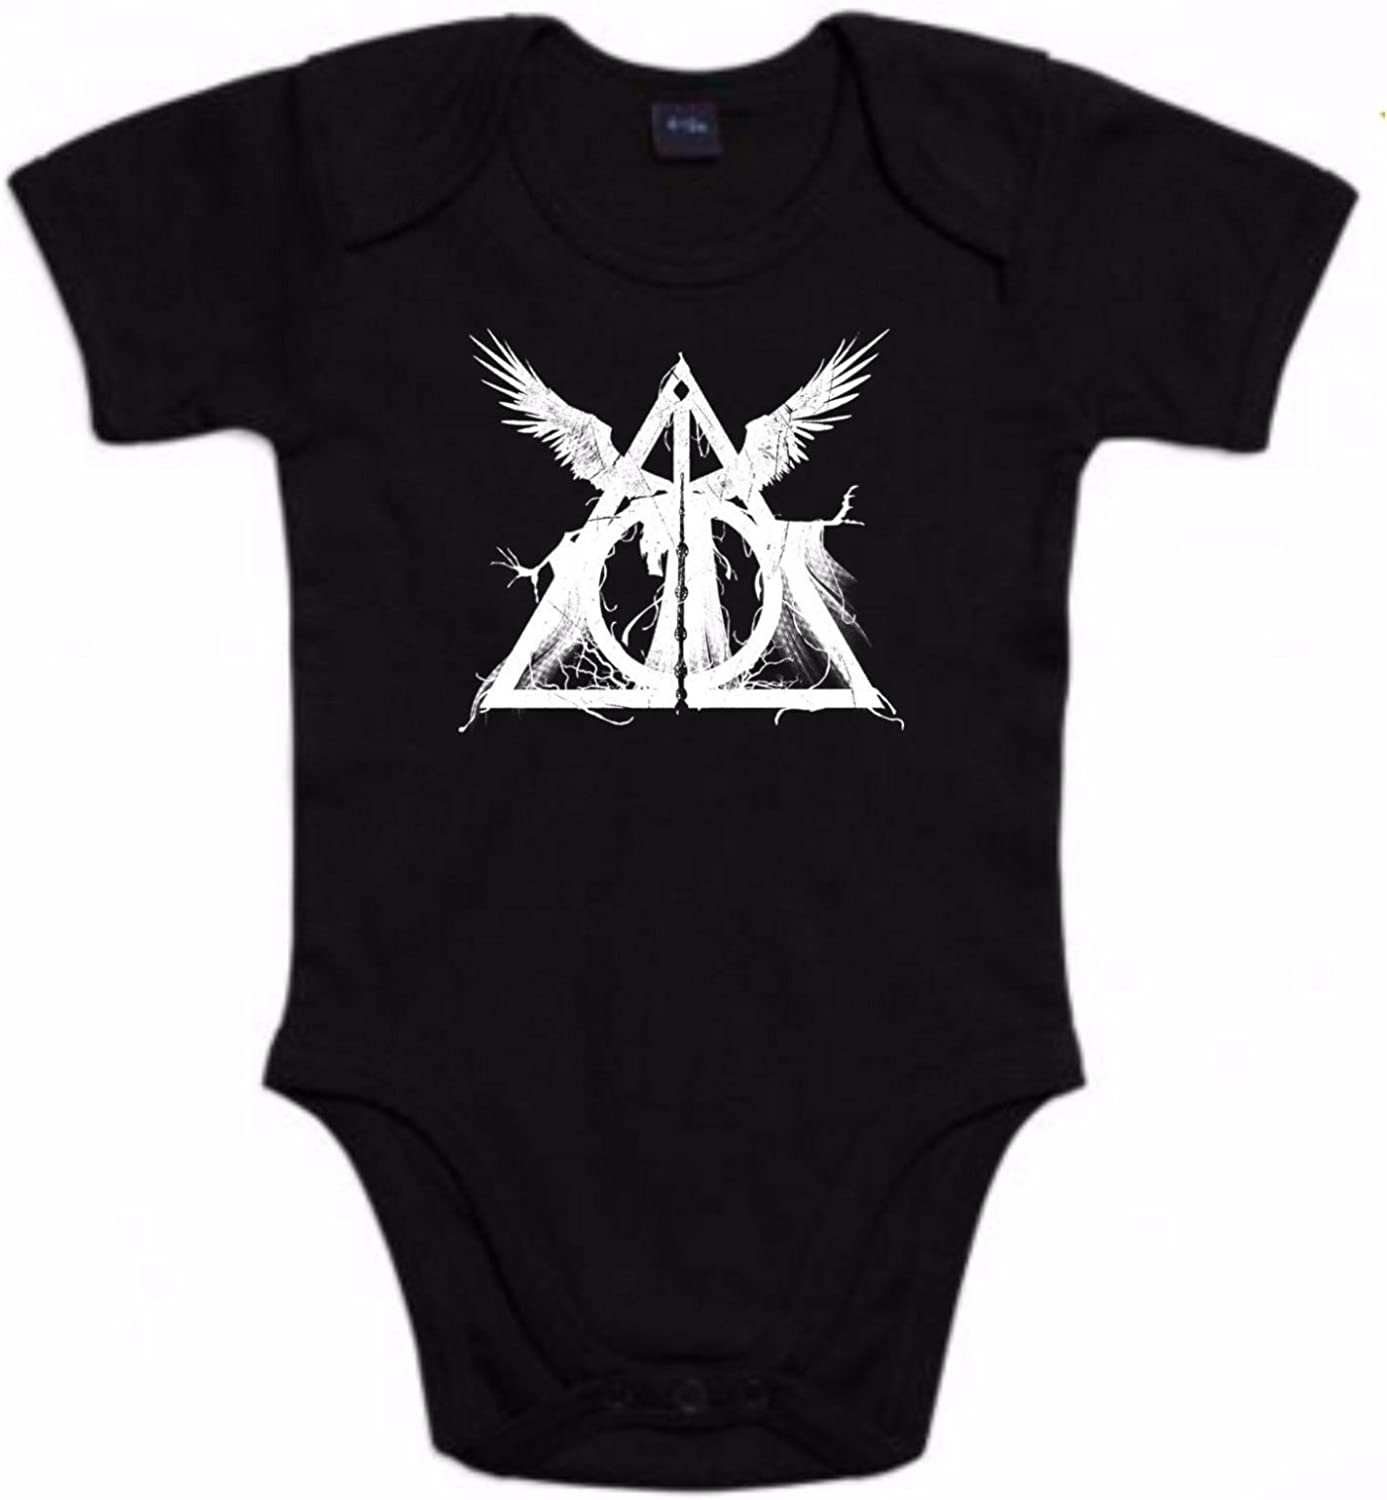 The Fan Tee Body de NIÑOS Harry Potter Albus Dumbledore Hogwarts